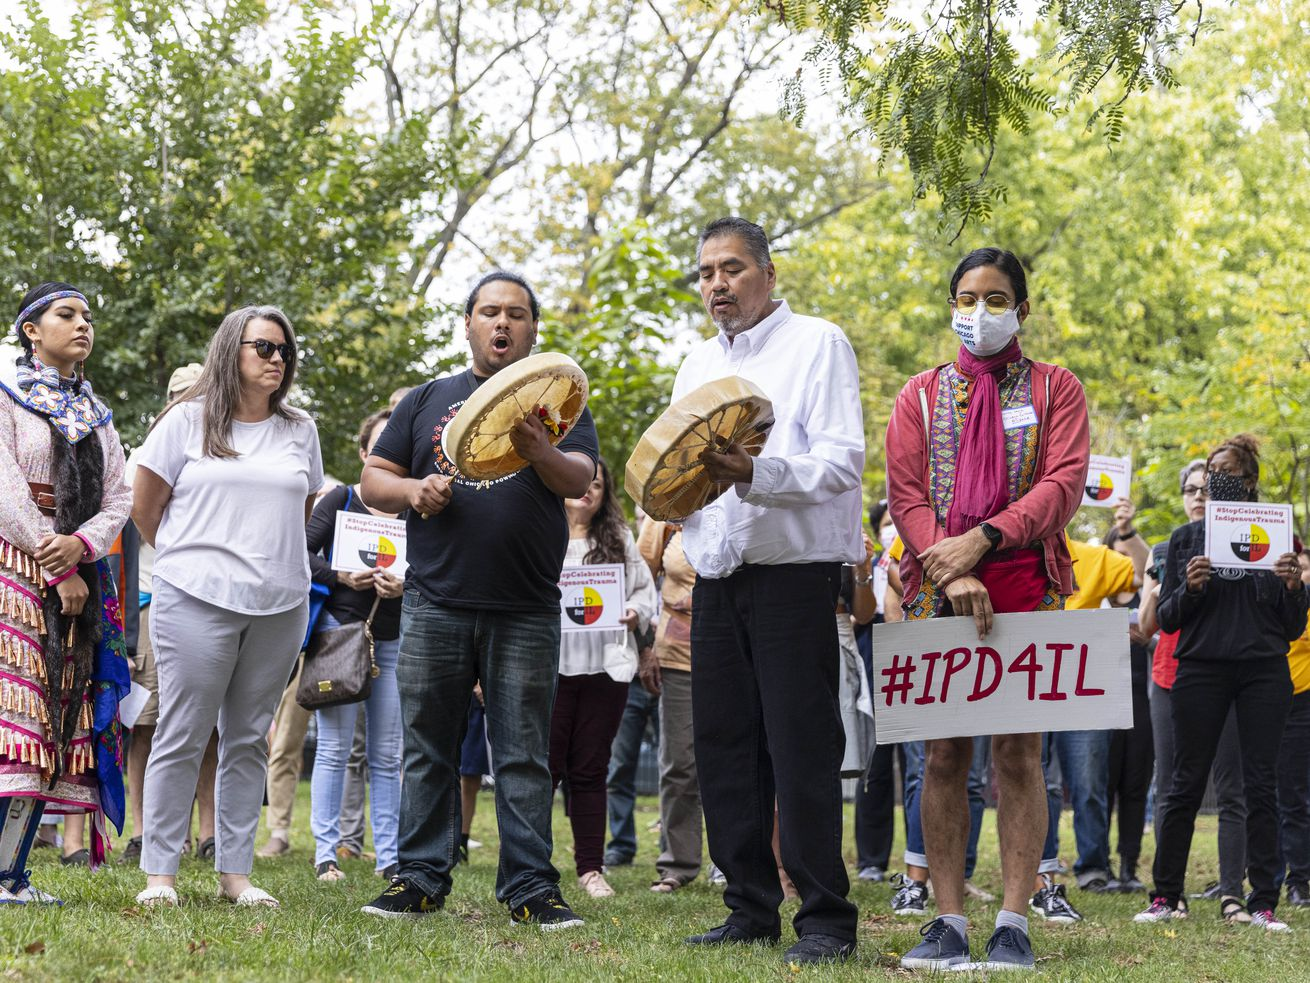 Drummers perform a song to start a press conference at Pottawattomie Park at 7340 N. Rogers Ave in Rogers Park to protest after Cook County Commissioners refused to advance a measure replacing Columbus Day with Indigenous Peoples' Day. Drummers from the Choctaw Nation perform an native healing song at a rally to replace Columbus Day, a holiday they say represents indigenous trauma, with Indigenous Peoples' Day.   Anthony Vazquez/Sun-Times